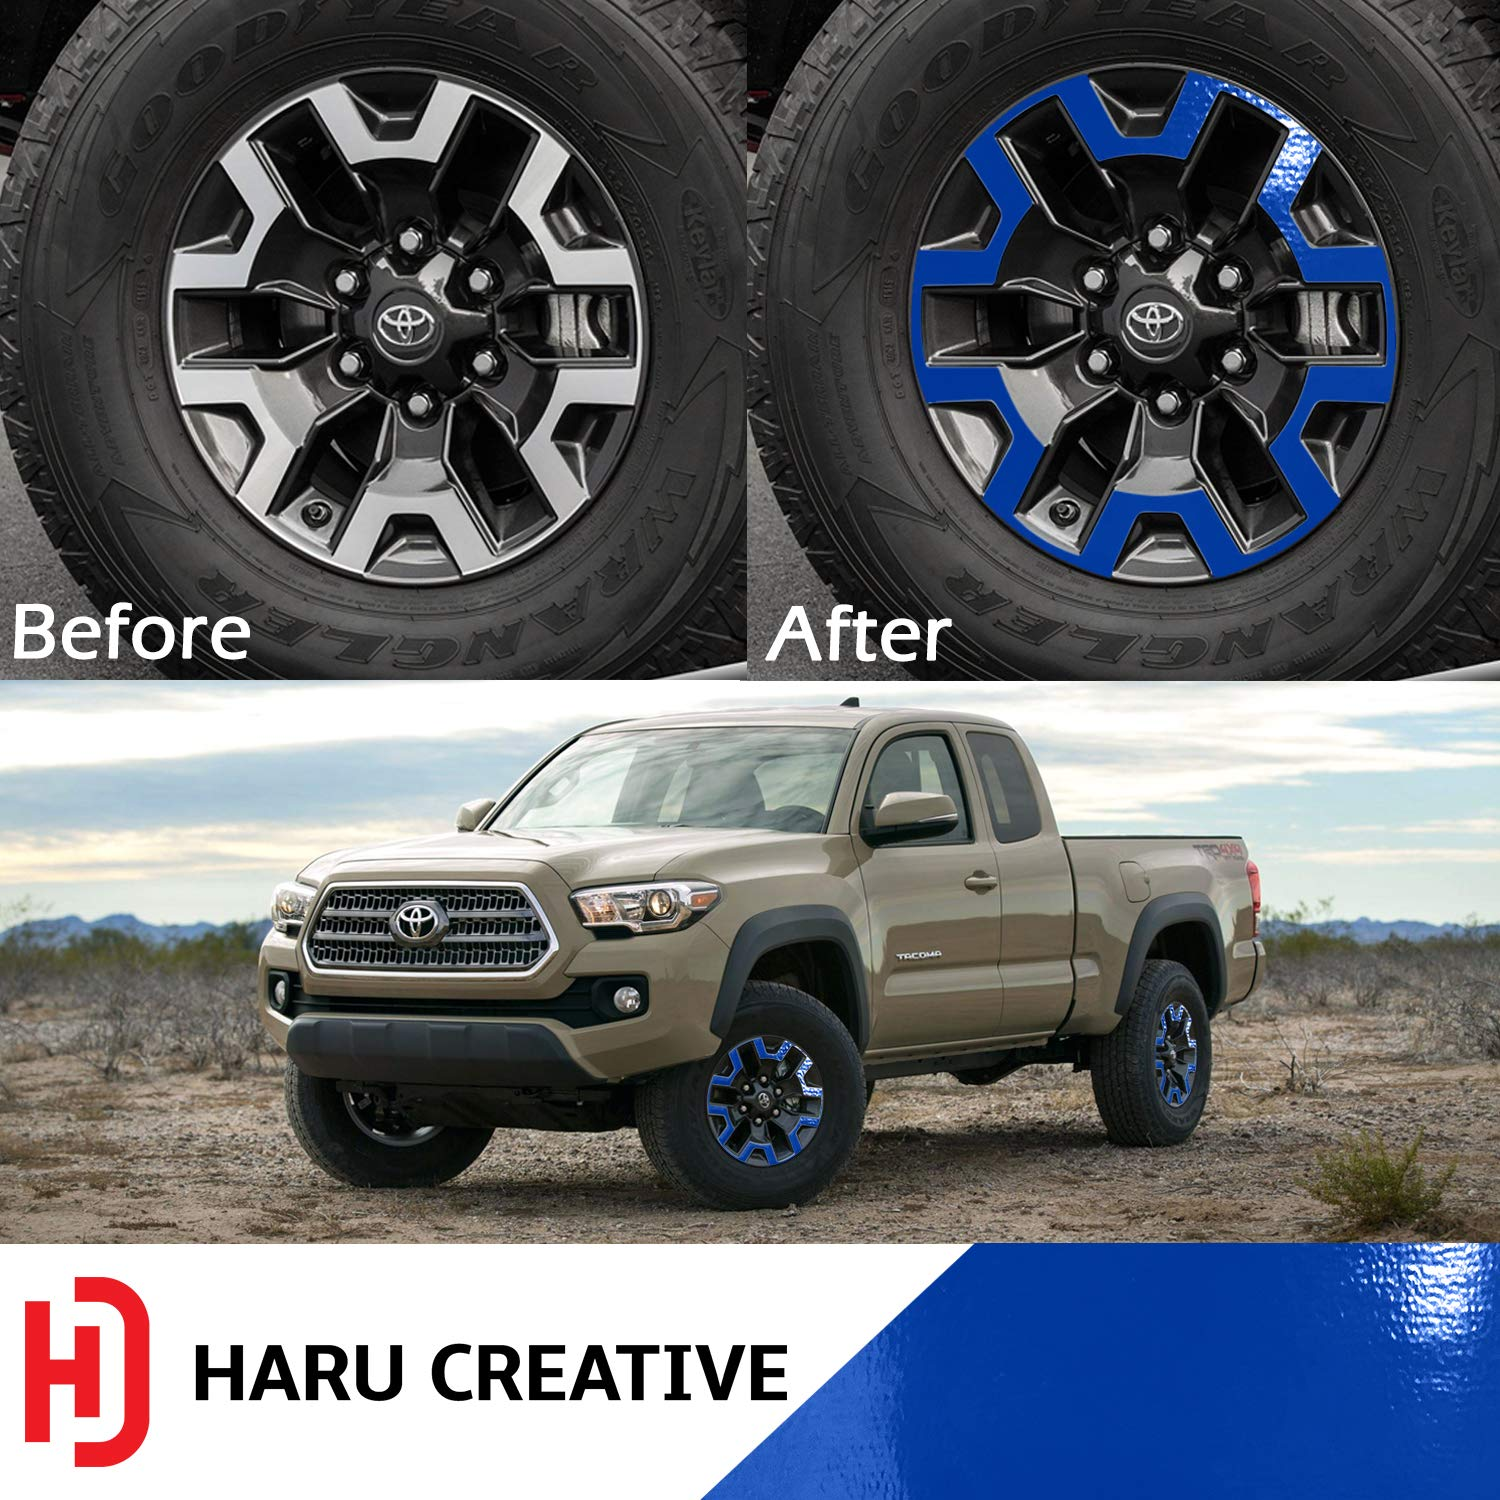 Haru Creative Gloss Orange Wheel Rim Overlay Vinyl Decal Sticker Compatible with and Fits Toyota Tacoma TRD Off Road 2016-2018